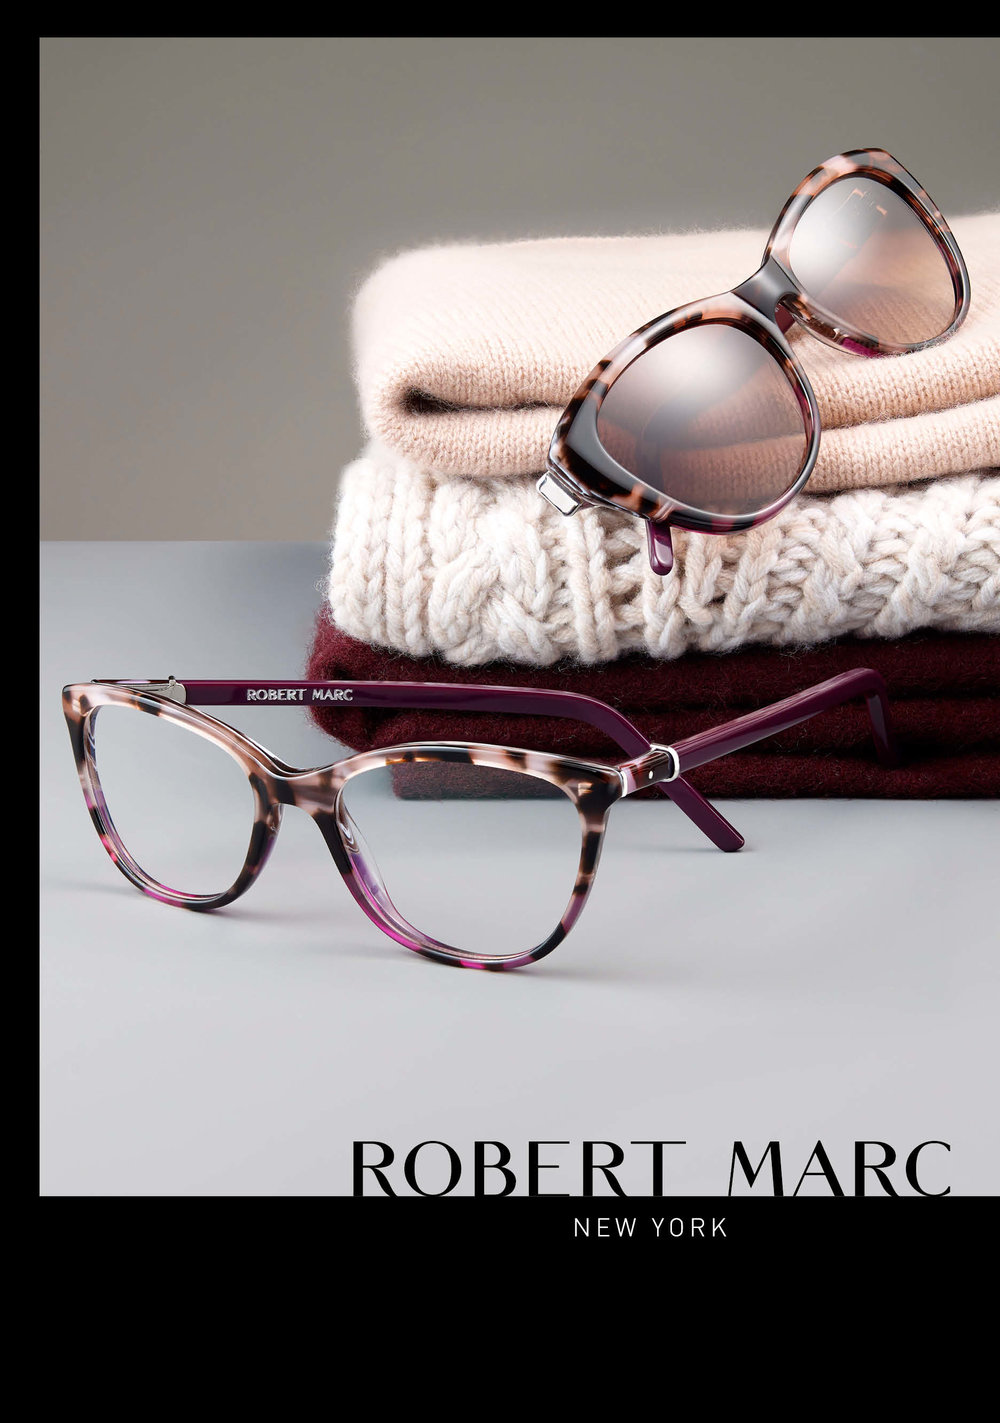 robert marc glasses.jpg